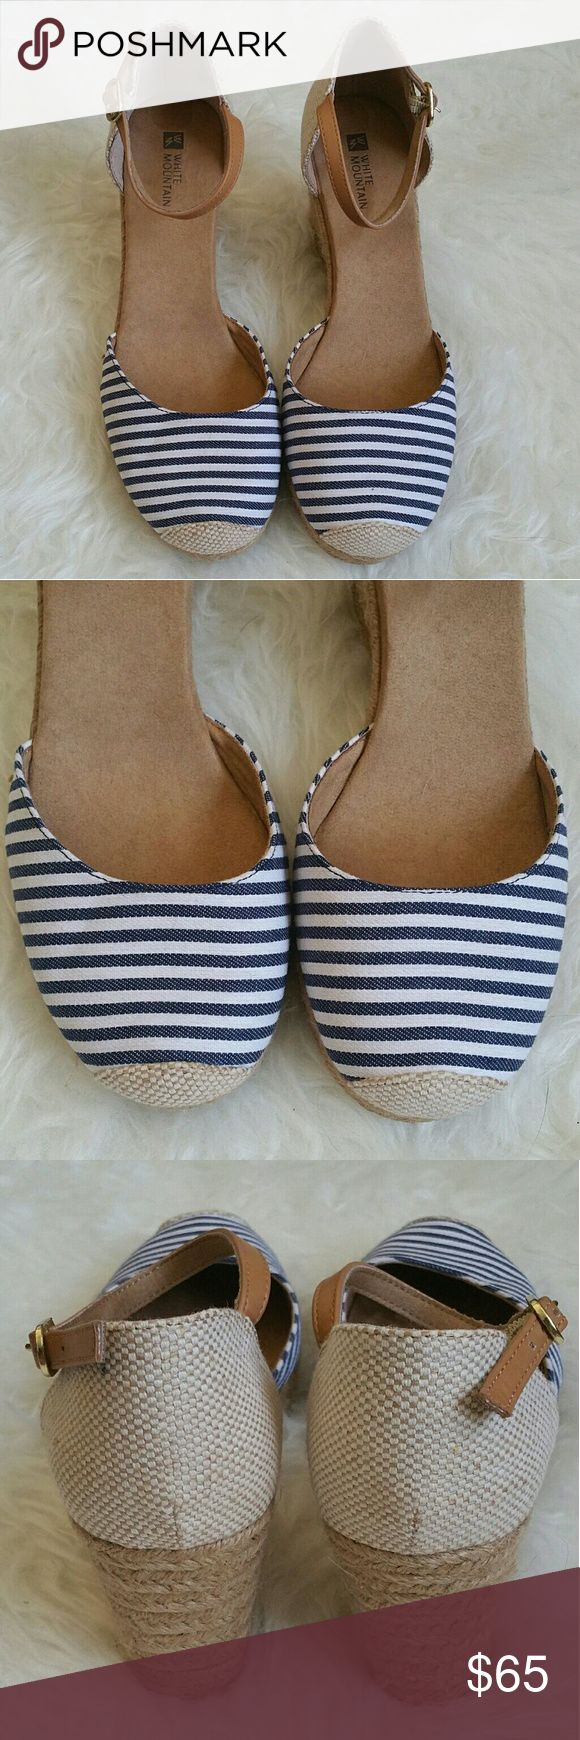 WHITE MOUNTAIN WEDGES Brand New espadrilles wedge. With navy and white stripes. Super comfortable and perfect for this up coming spring/summer season.   Heel height: 3 1/2 inches White Mountain Shoes Wedges